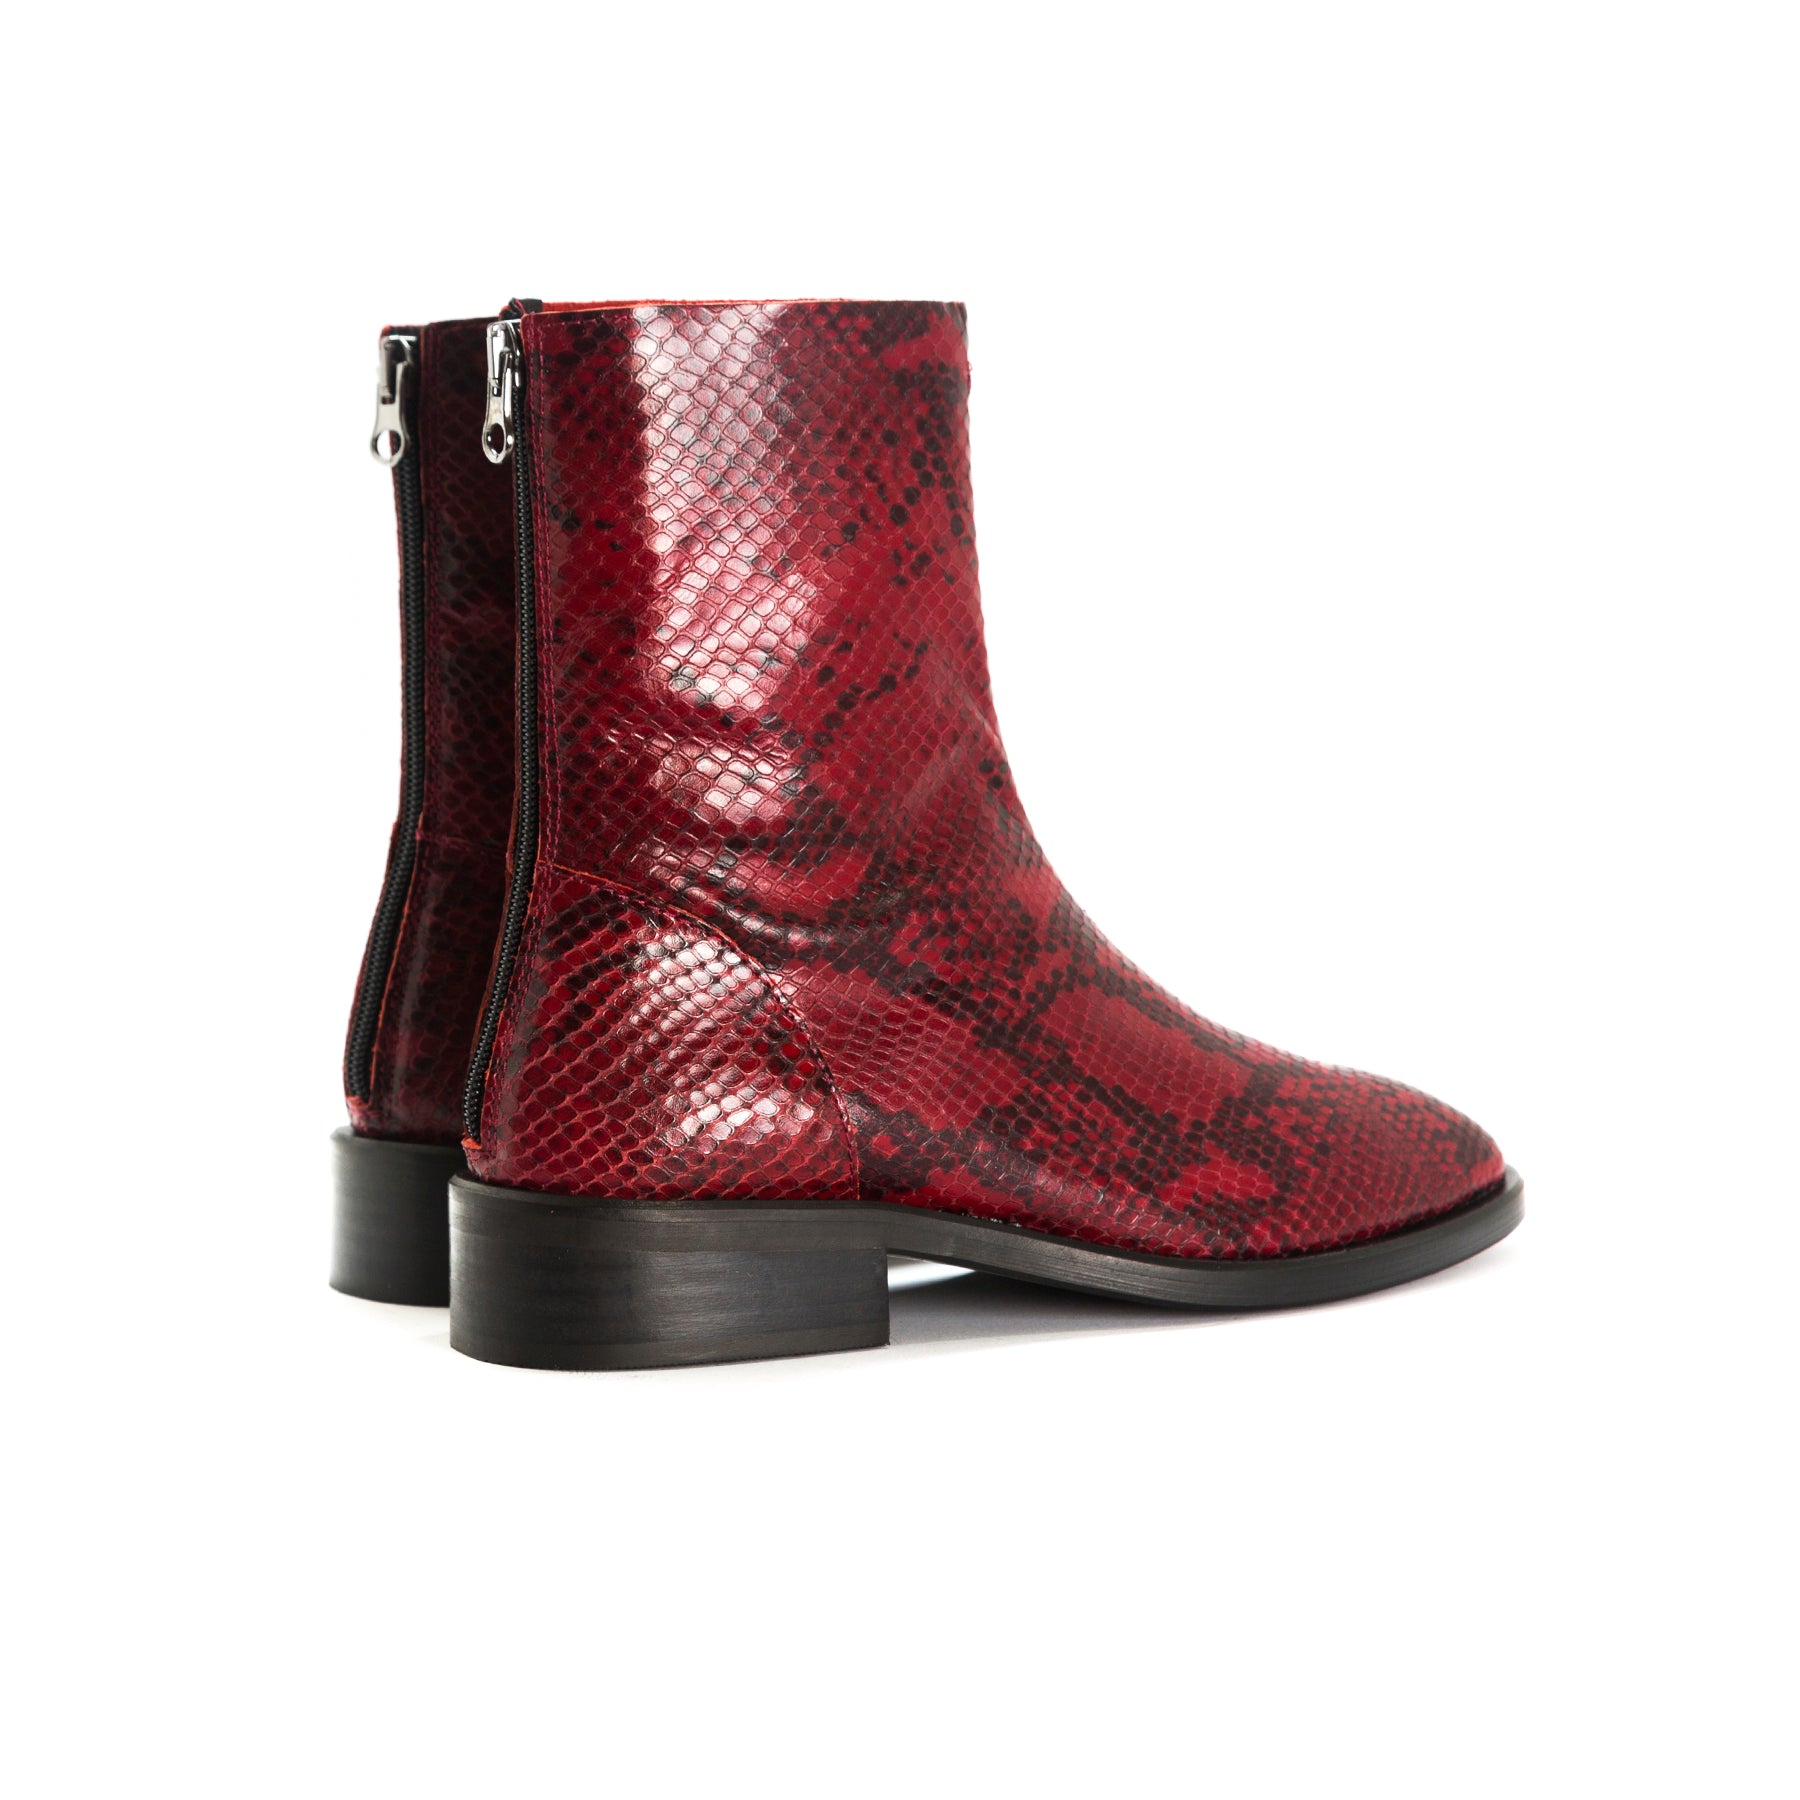 Dalton Red Snake Ankle Boots